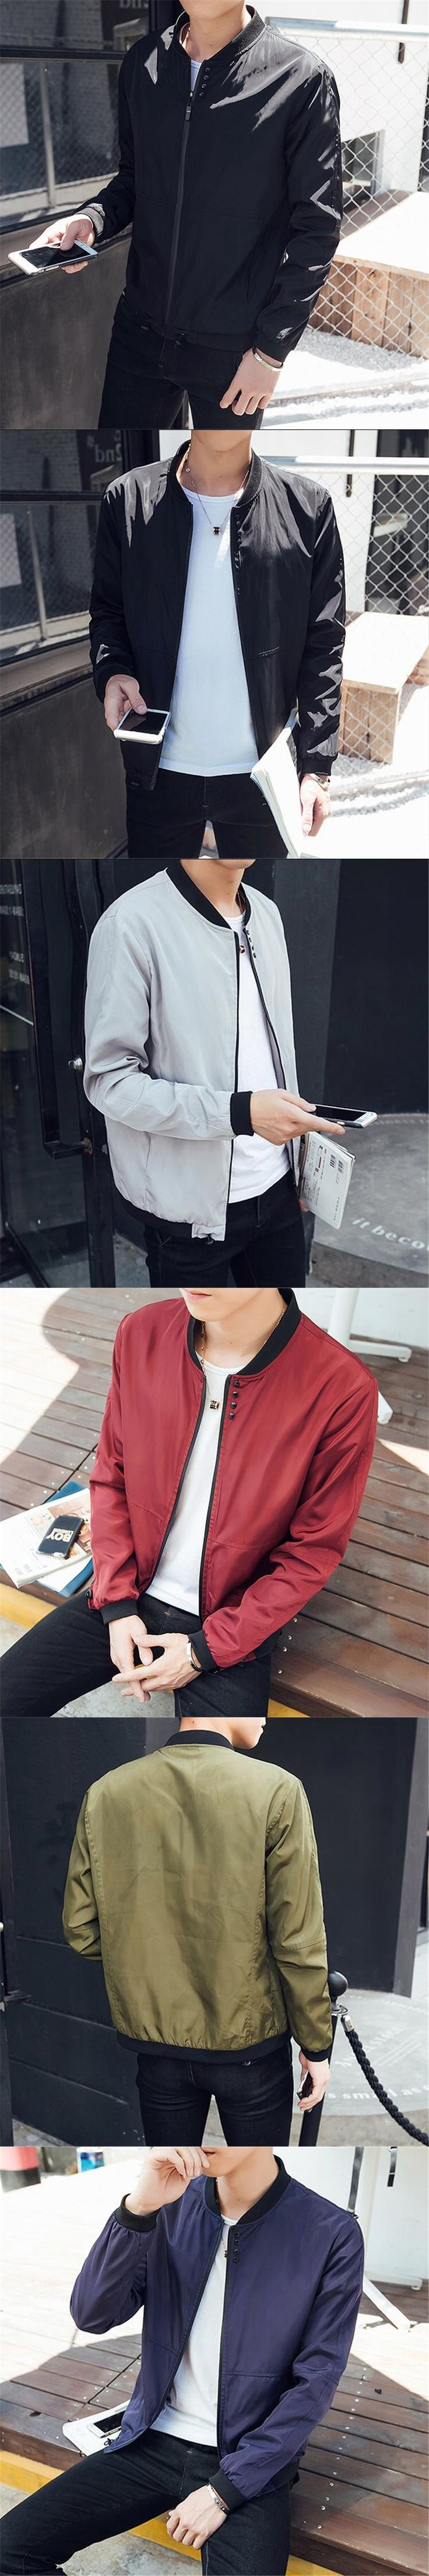 Hot Sale Brand Jacket 2017 New Fashion Men Clothes Trend College Slim Fit High-Quality Casual Mens Jackets And Coats M-5XL